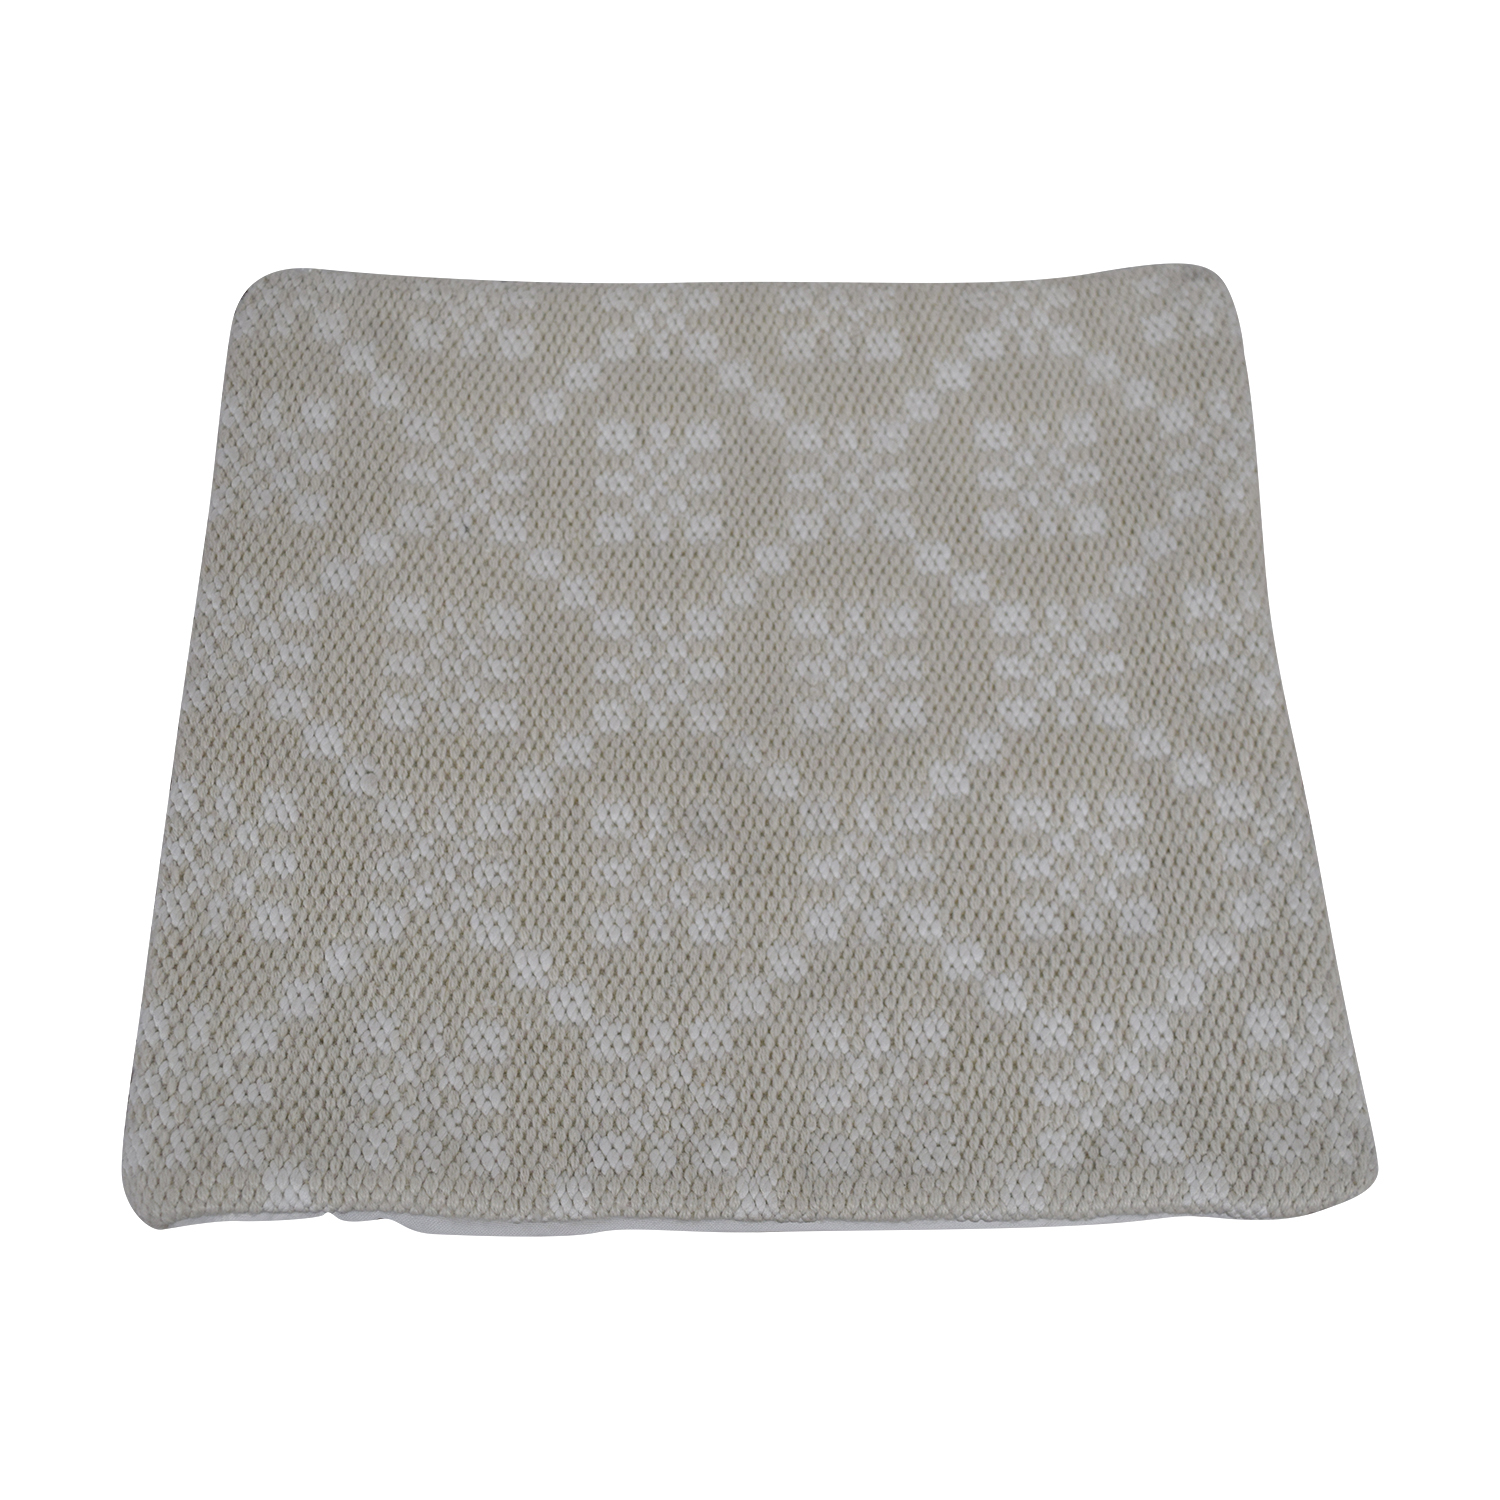 Obeetee Obeetee Tile Ivory Cushion Cover dimensions